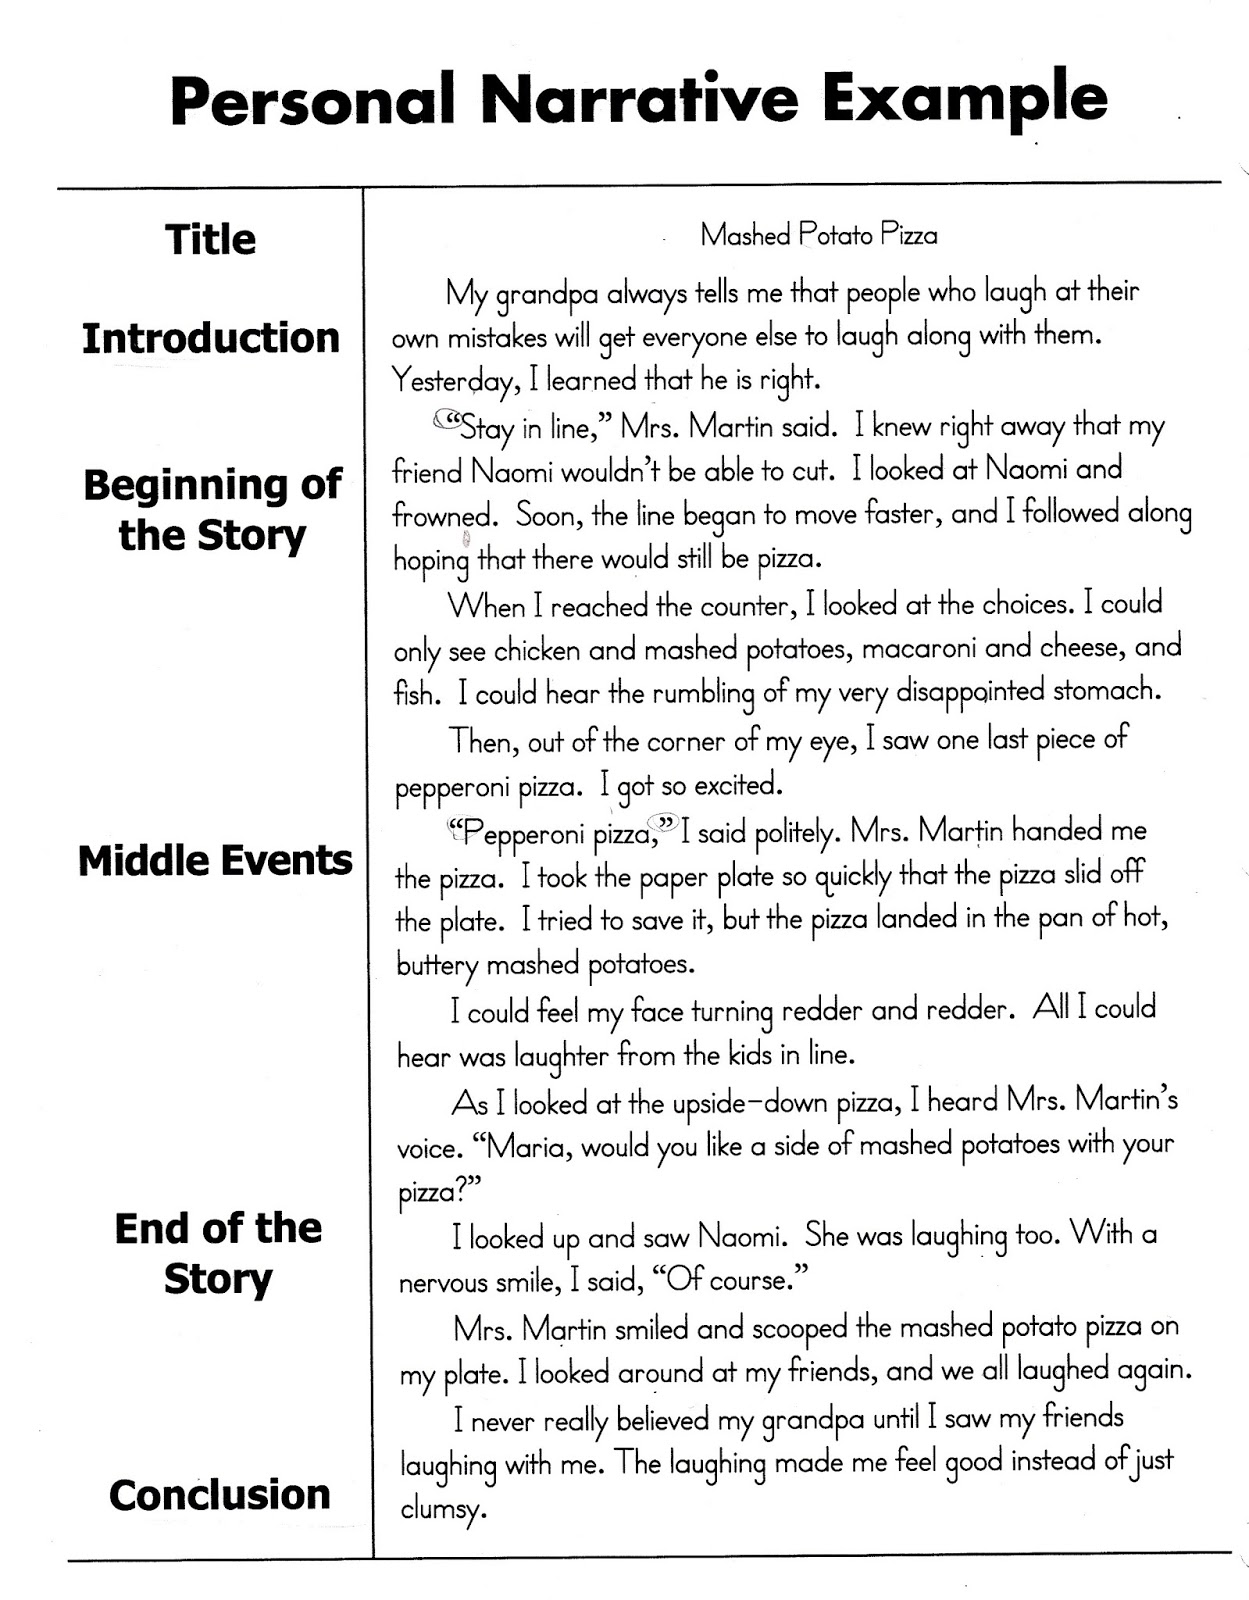 essays on stories Poe's short stories edgar allan poe share home literature notes poe's short stories poe's critical theories table of contents all subjects in poe's review of twice-told tales and in his two main essays on criticism.